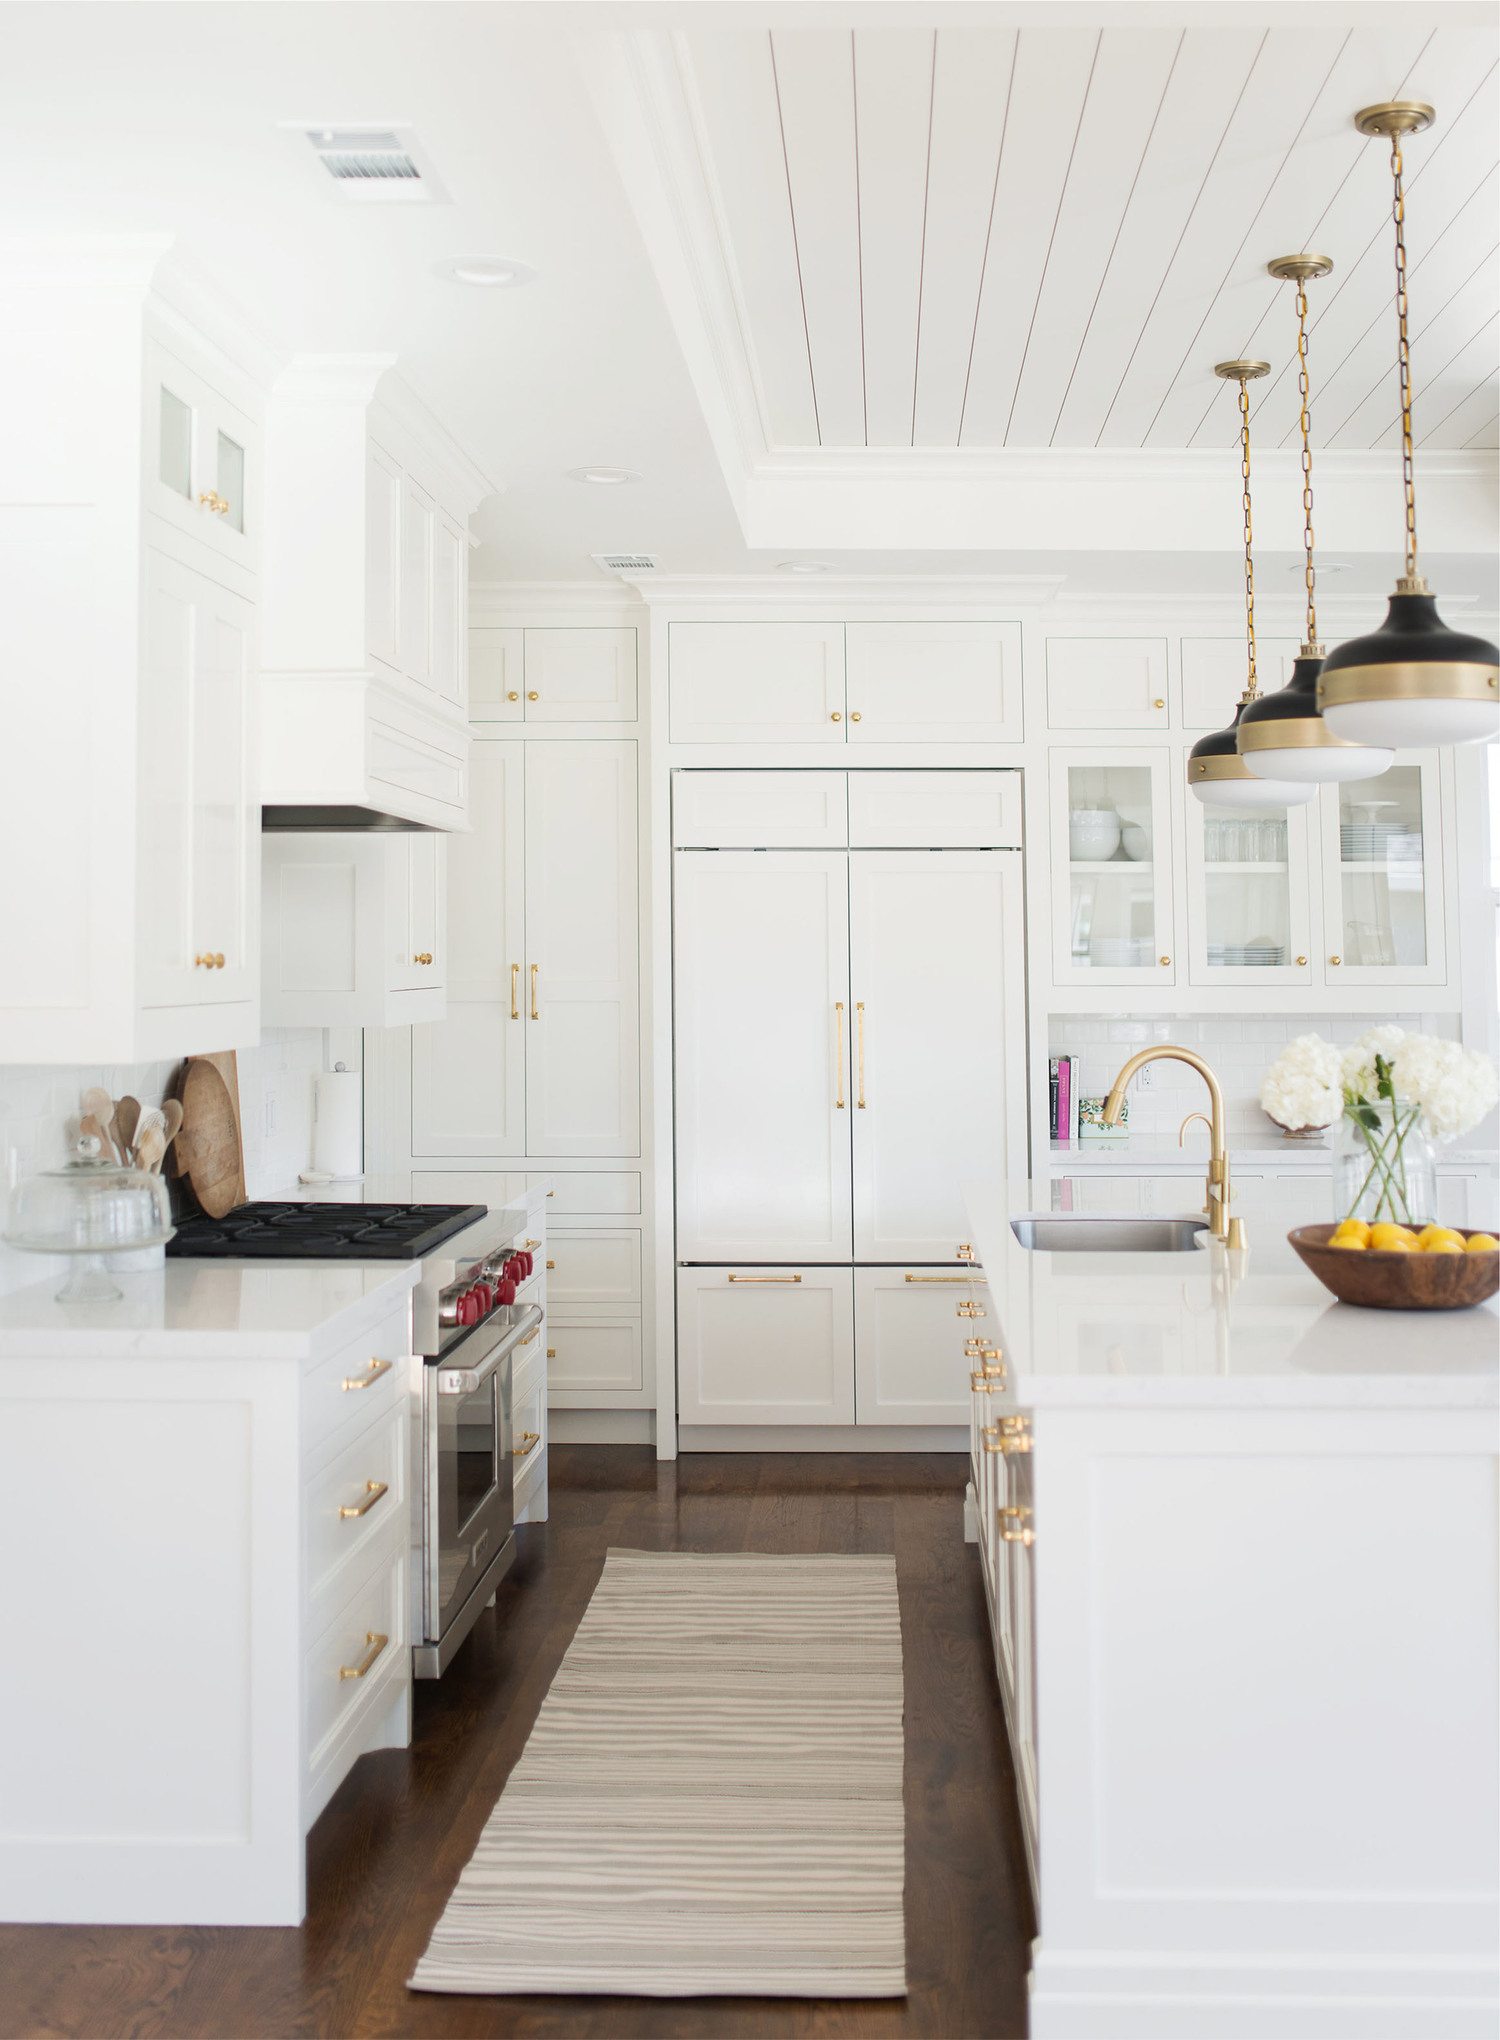 I totally gave in on this one. And this narrow shiplap is one of the best ways to go. Ceiling treatments create so much interest in a room! I feel like they can really make a room look complete.